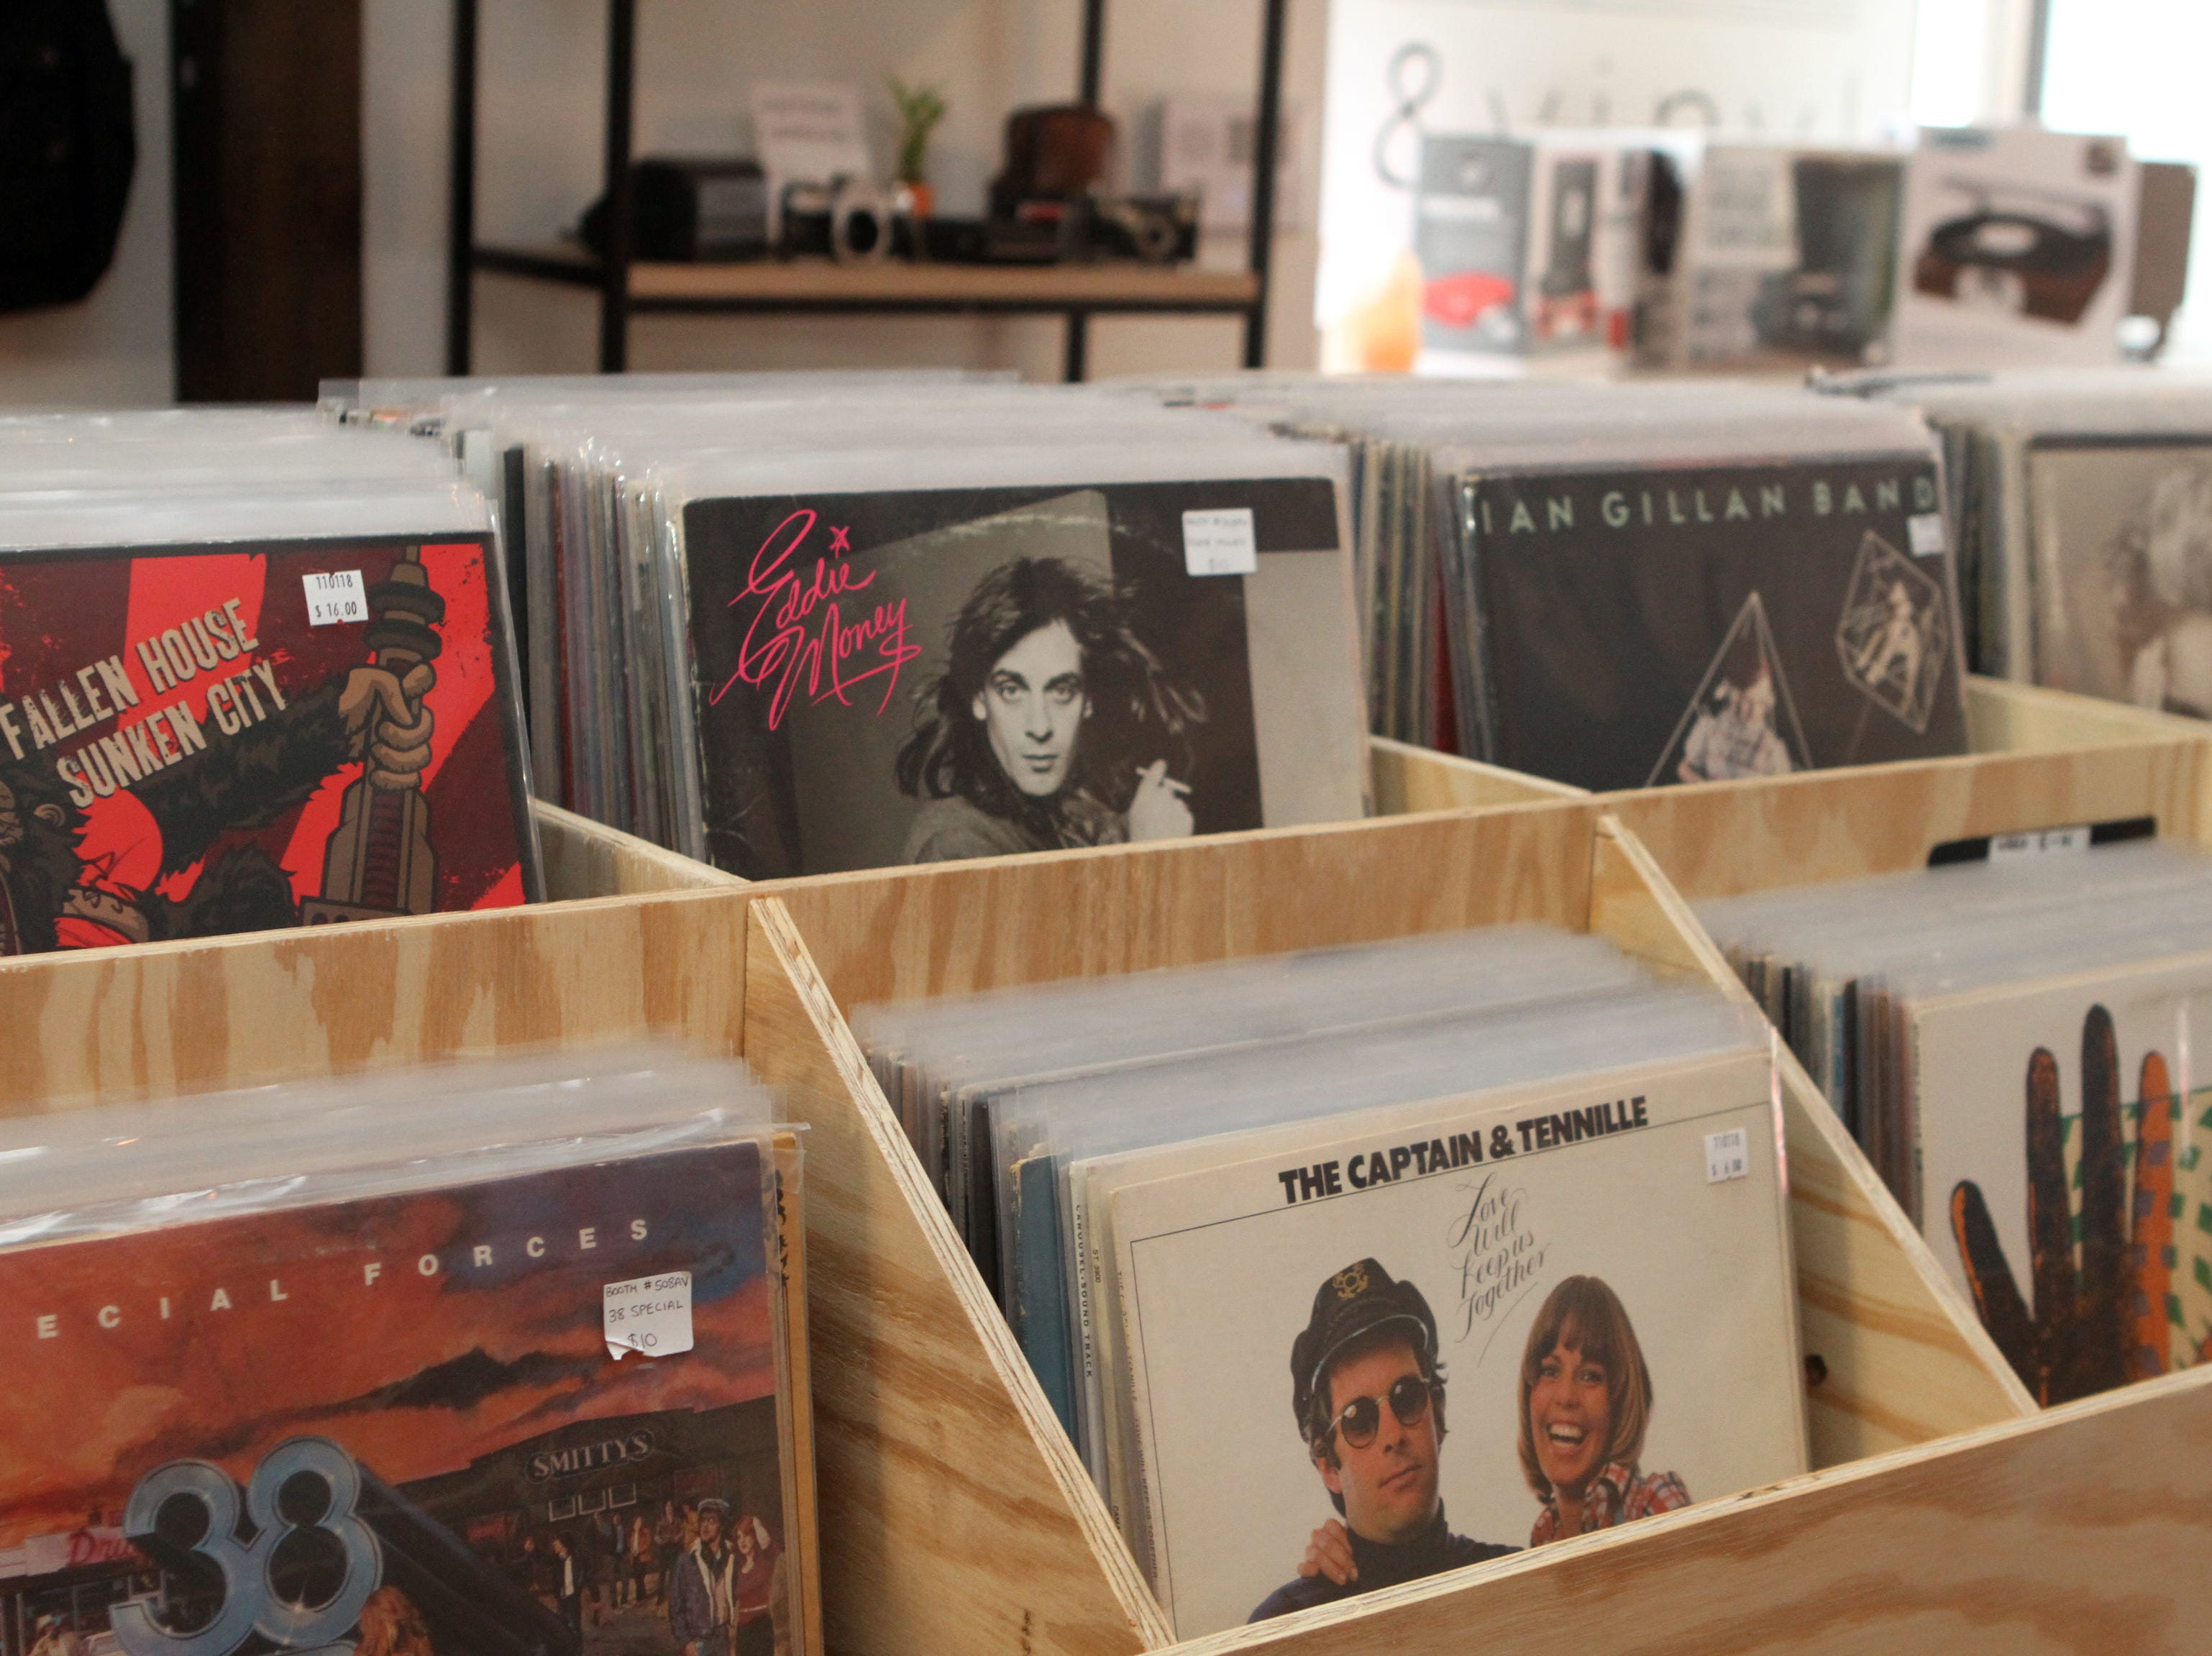 AndVinyl, a new shop selling new and used records, opened Monday, Nov. 5, 2018 on Franklin St. in downtown Clarksville.